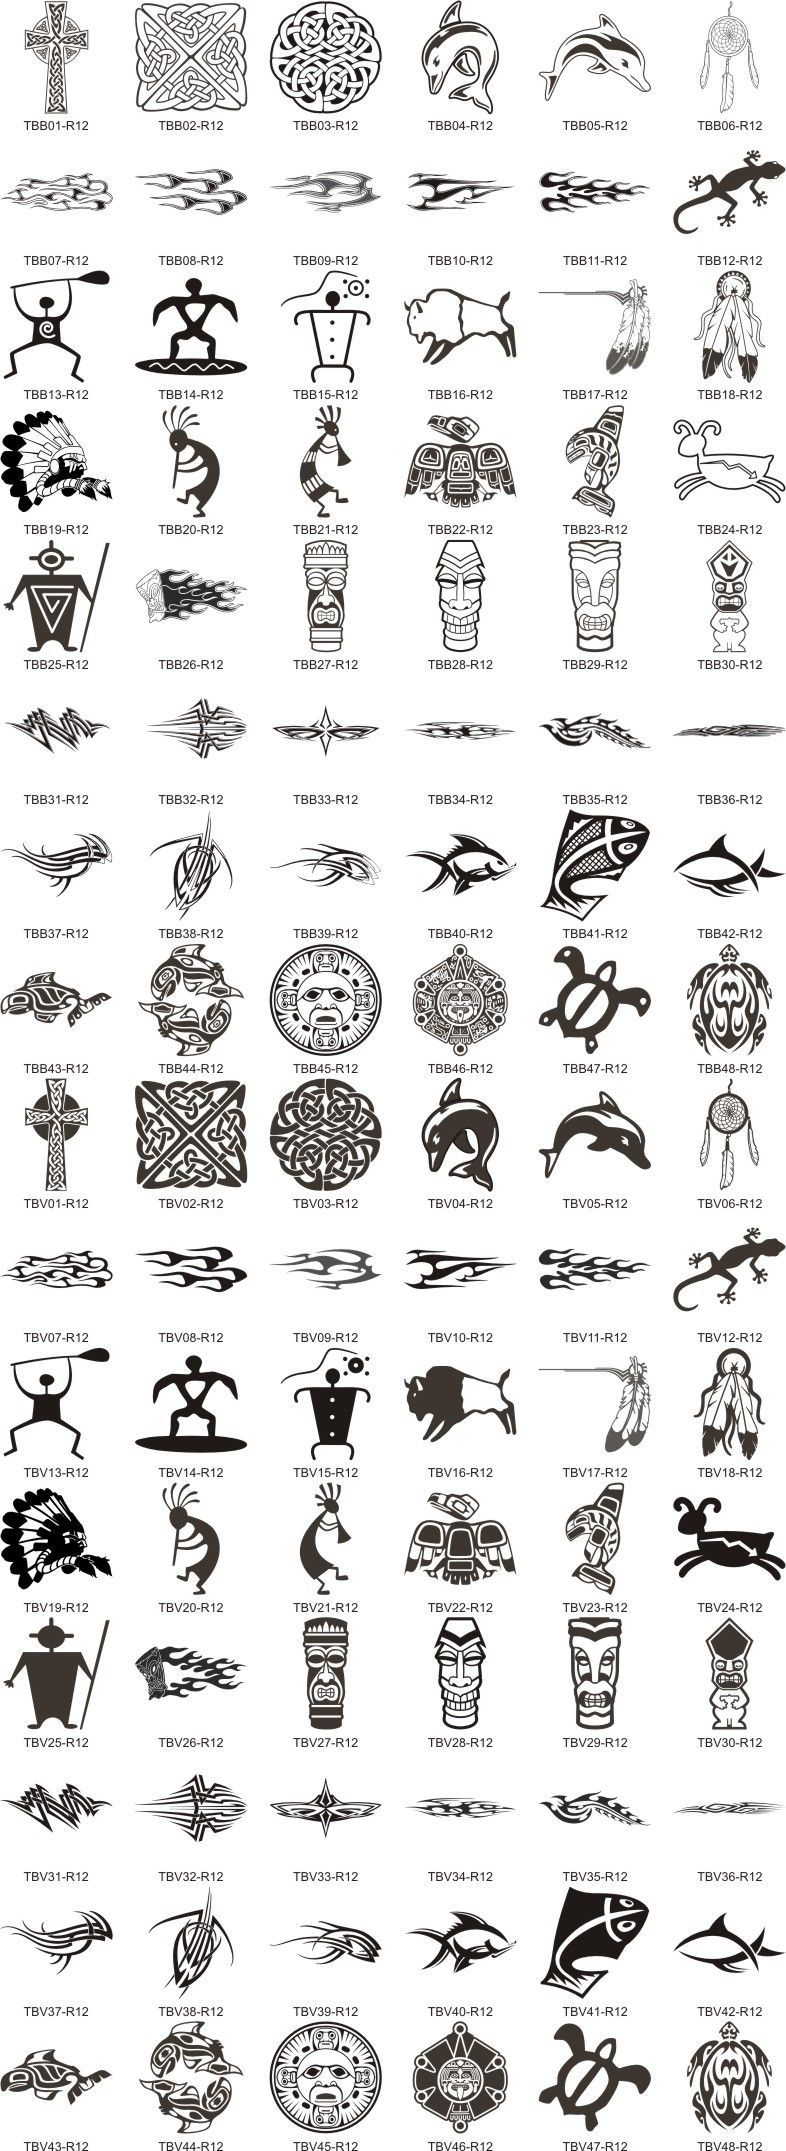 Symbols And Their Meanings Fonts And Symbols Filipino Tattoos In